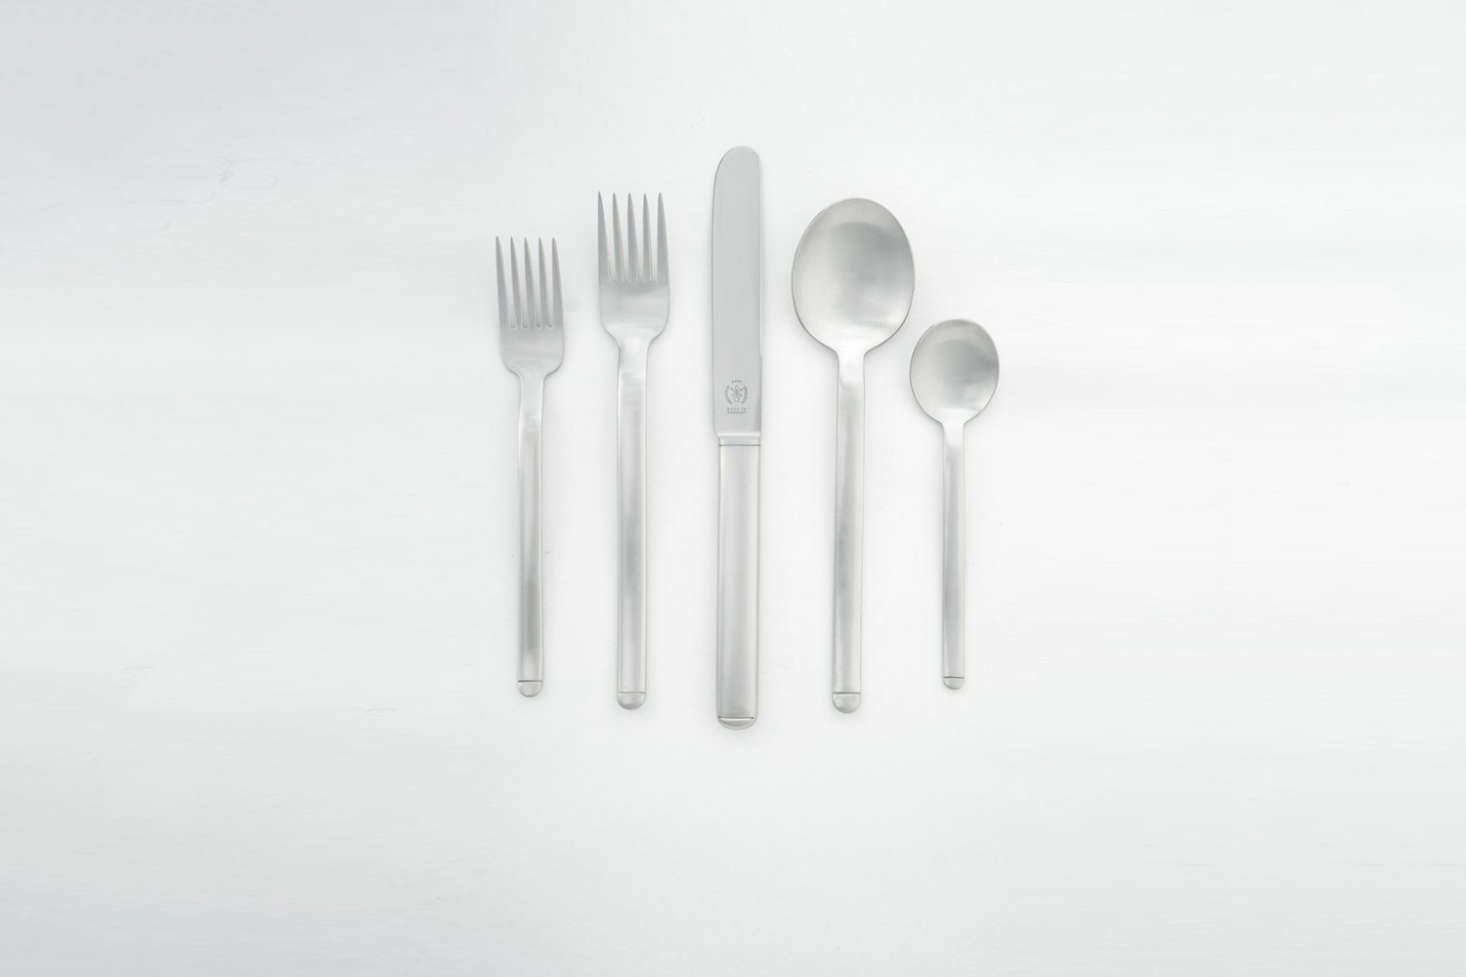 The Carl Pott Pott 33 Flatware from 75 is weighty, has a horizontal etch at the base, and a five-tined fork. Made in Mettmann, Germany, the five-piece set is $380 at Horne. Photograph by Heidi Swanson, who formerly carried the set at her shop Quitokeeto.